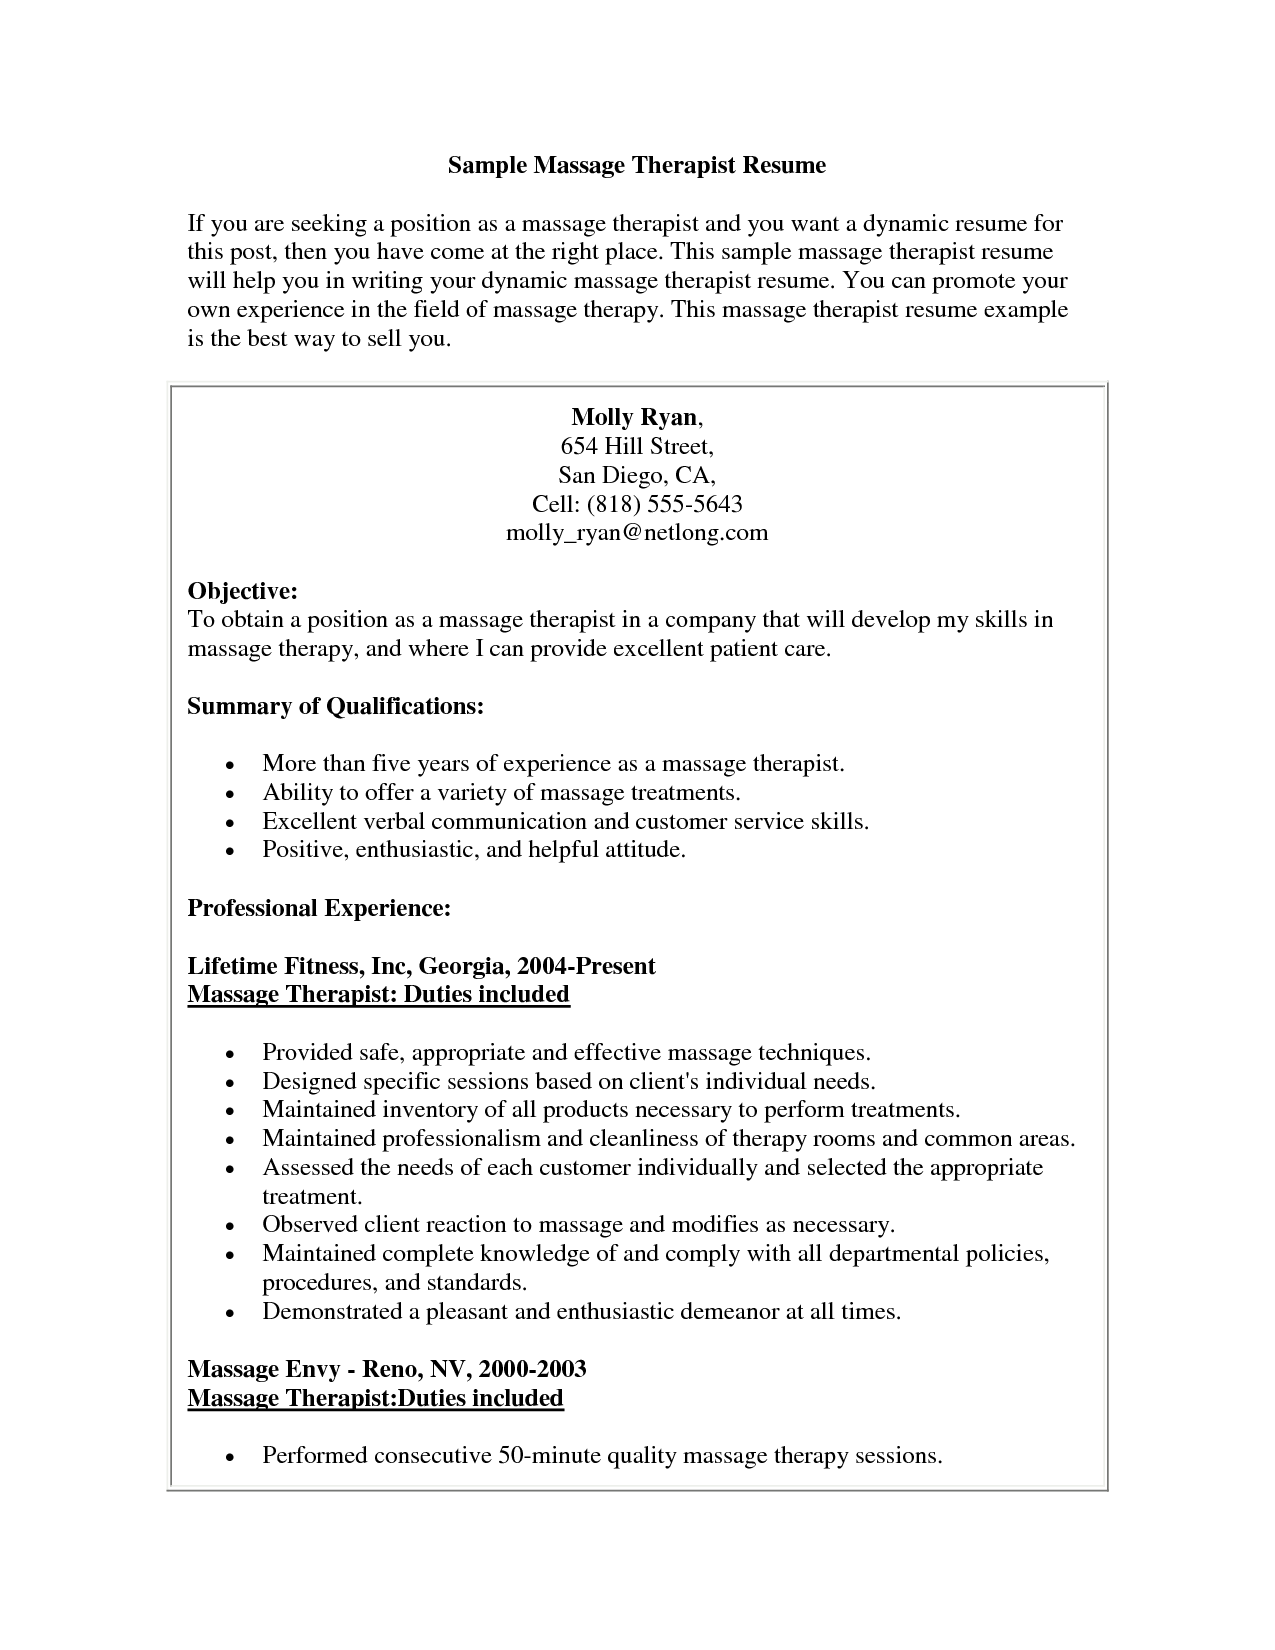 resume format for freshers resume format for massage therapist resume sample massage therapist resume sample massage therapist resume objective massage therapist